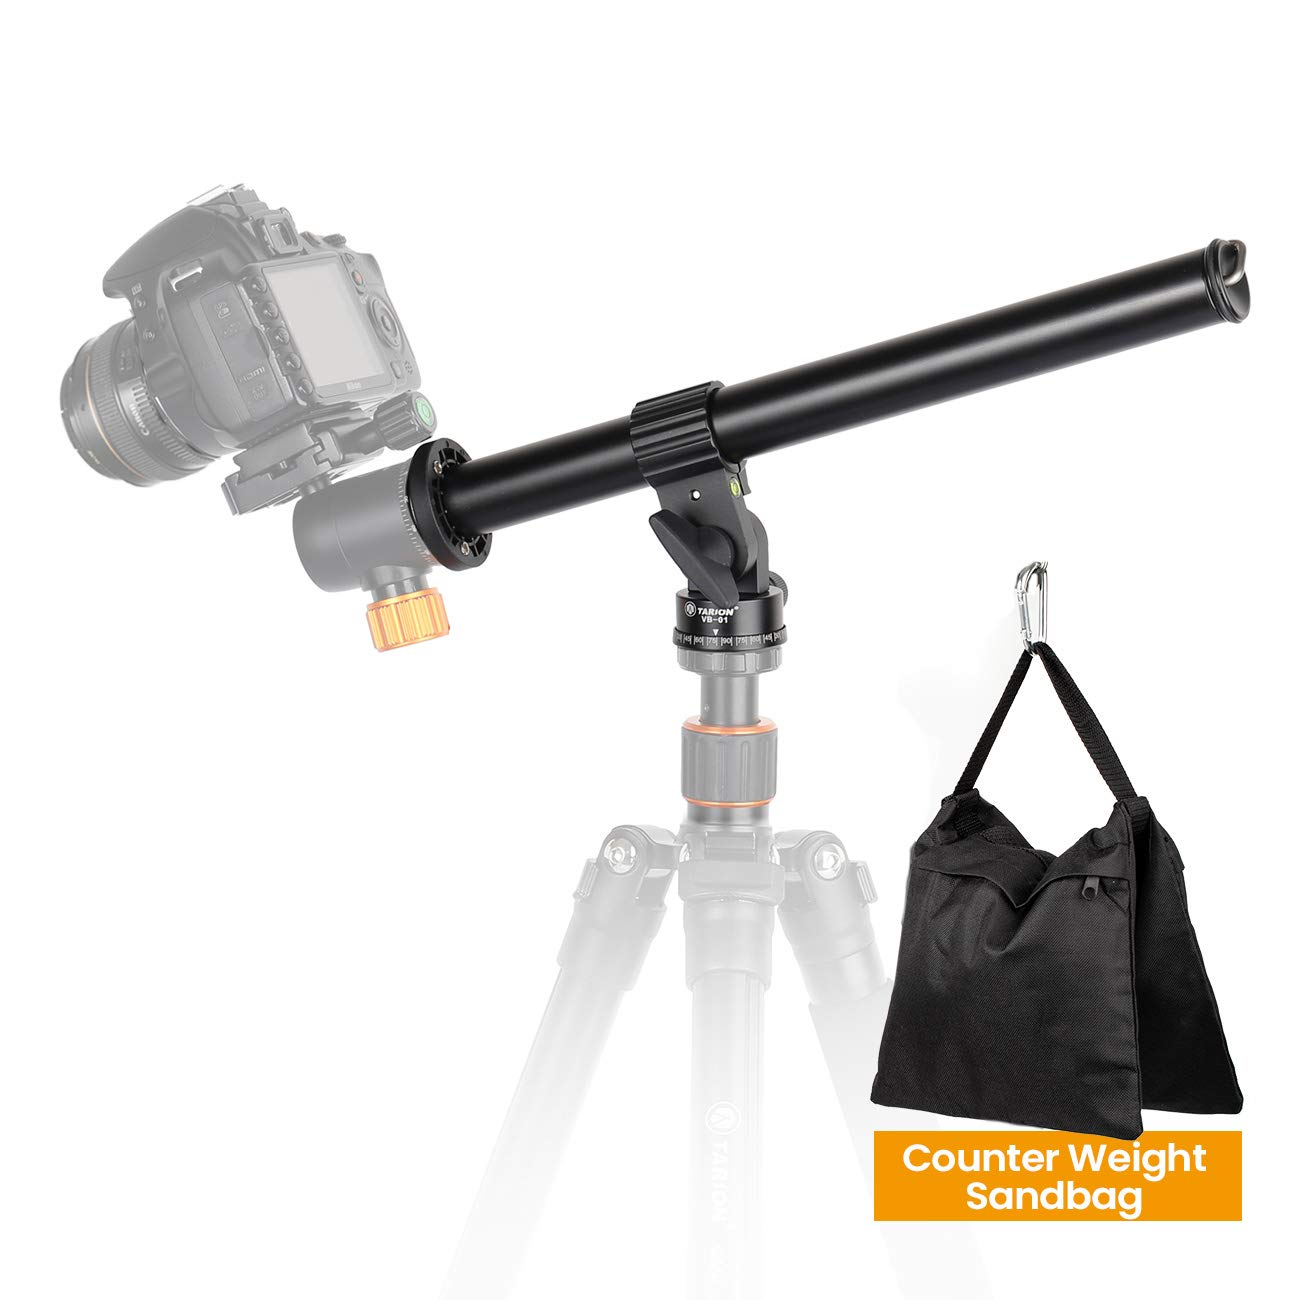 TARION Tripod Extension Arm Horizontal Centre Column Boom 12.6'' Extender 360° Rotatable Aluminum Alloy Swivel Lock with Counterweight Sandbag for Overhead Photography and Filming by TARION